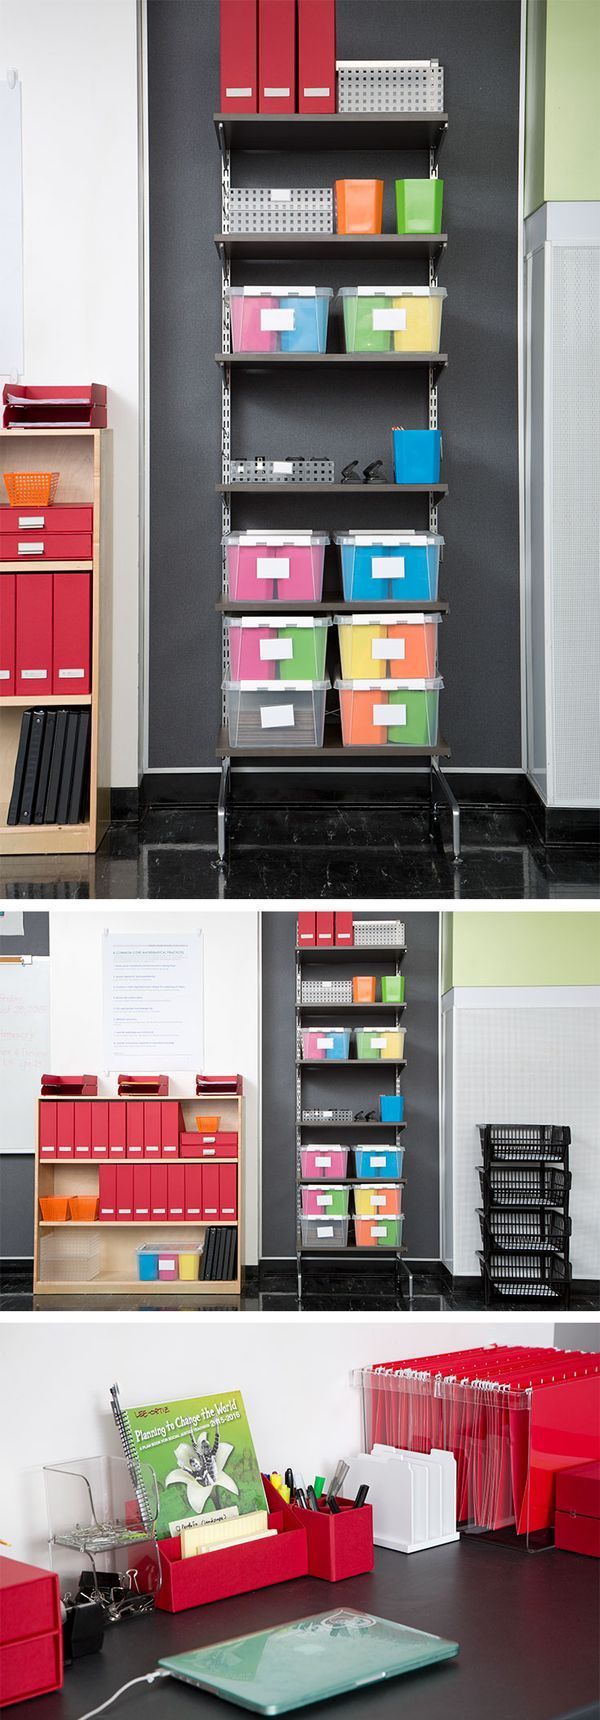 Uncategorized Add Organization Tips 232 best teacher organization images on pinterest container store and organized teacher